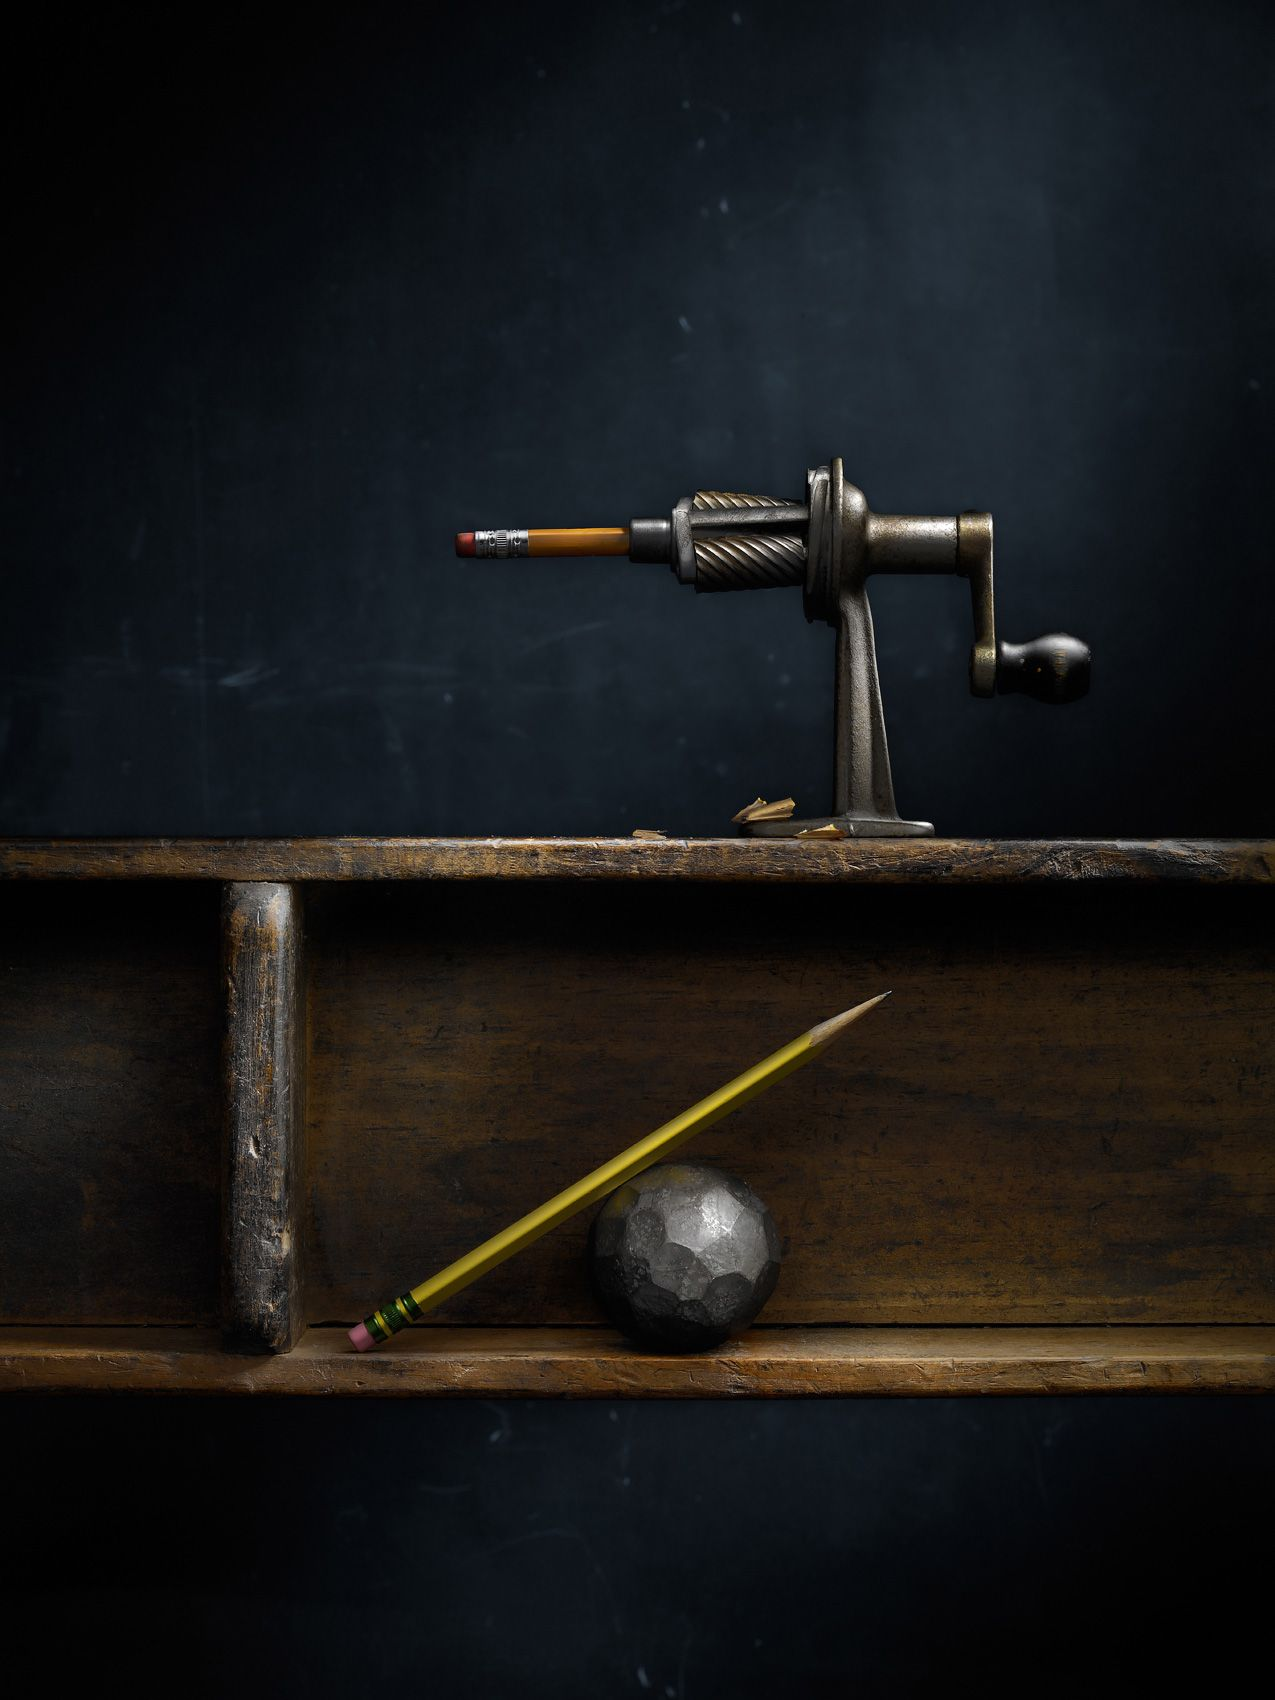 Still_Life_with_Pencil_Sharpener_and-Steel_Ball_LB.jpg